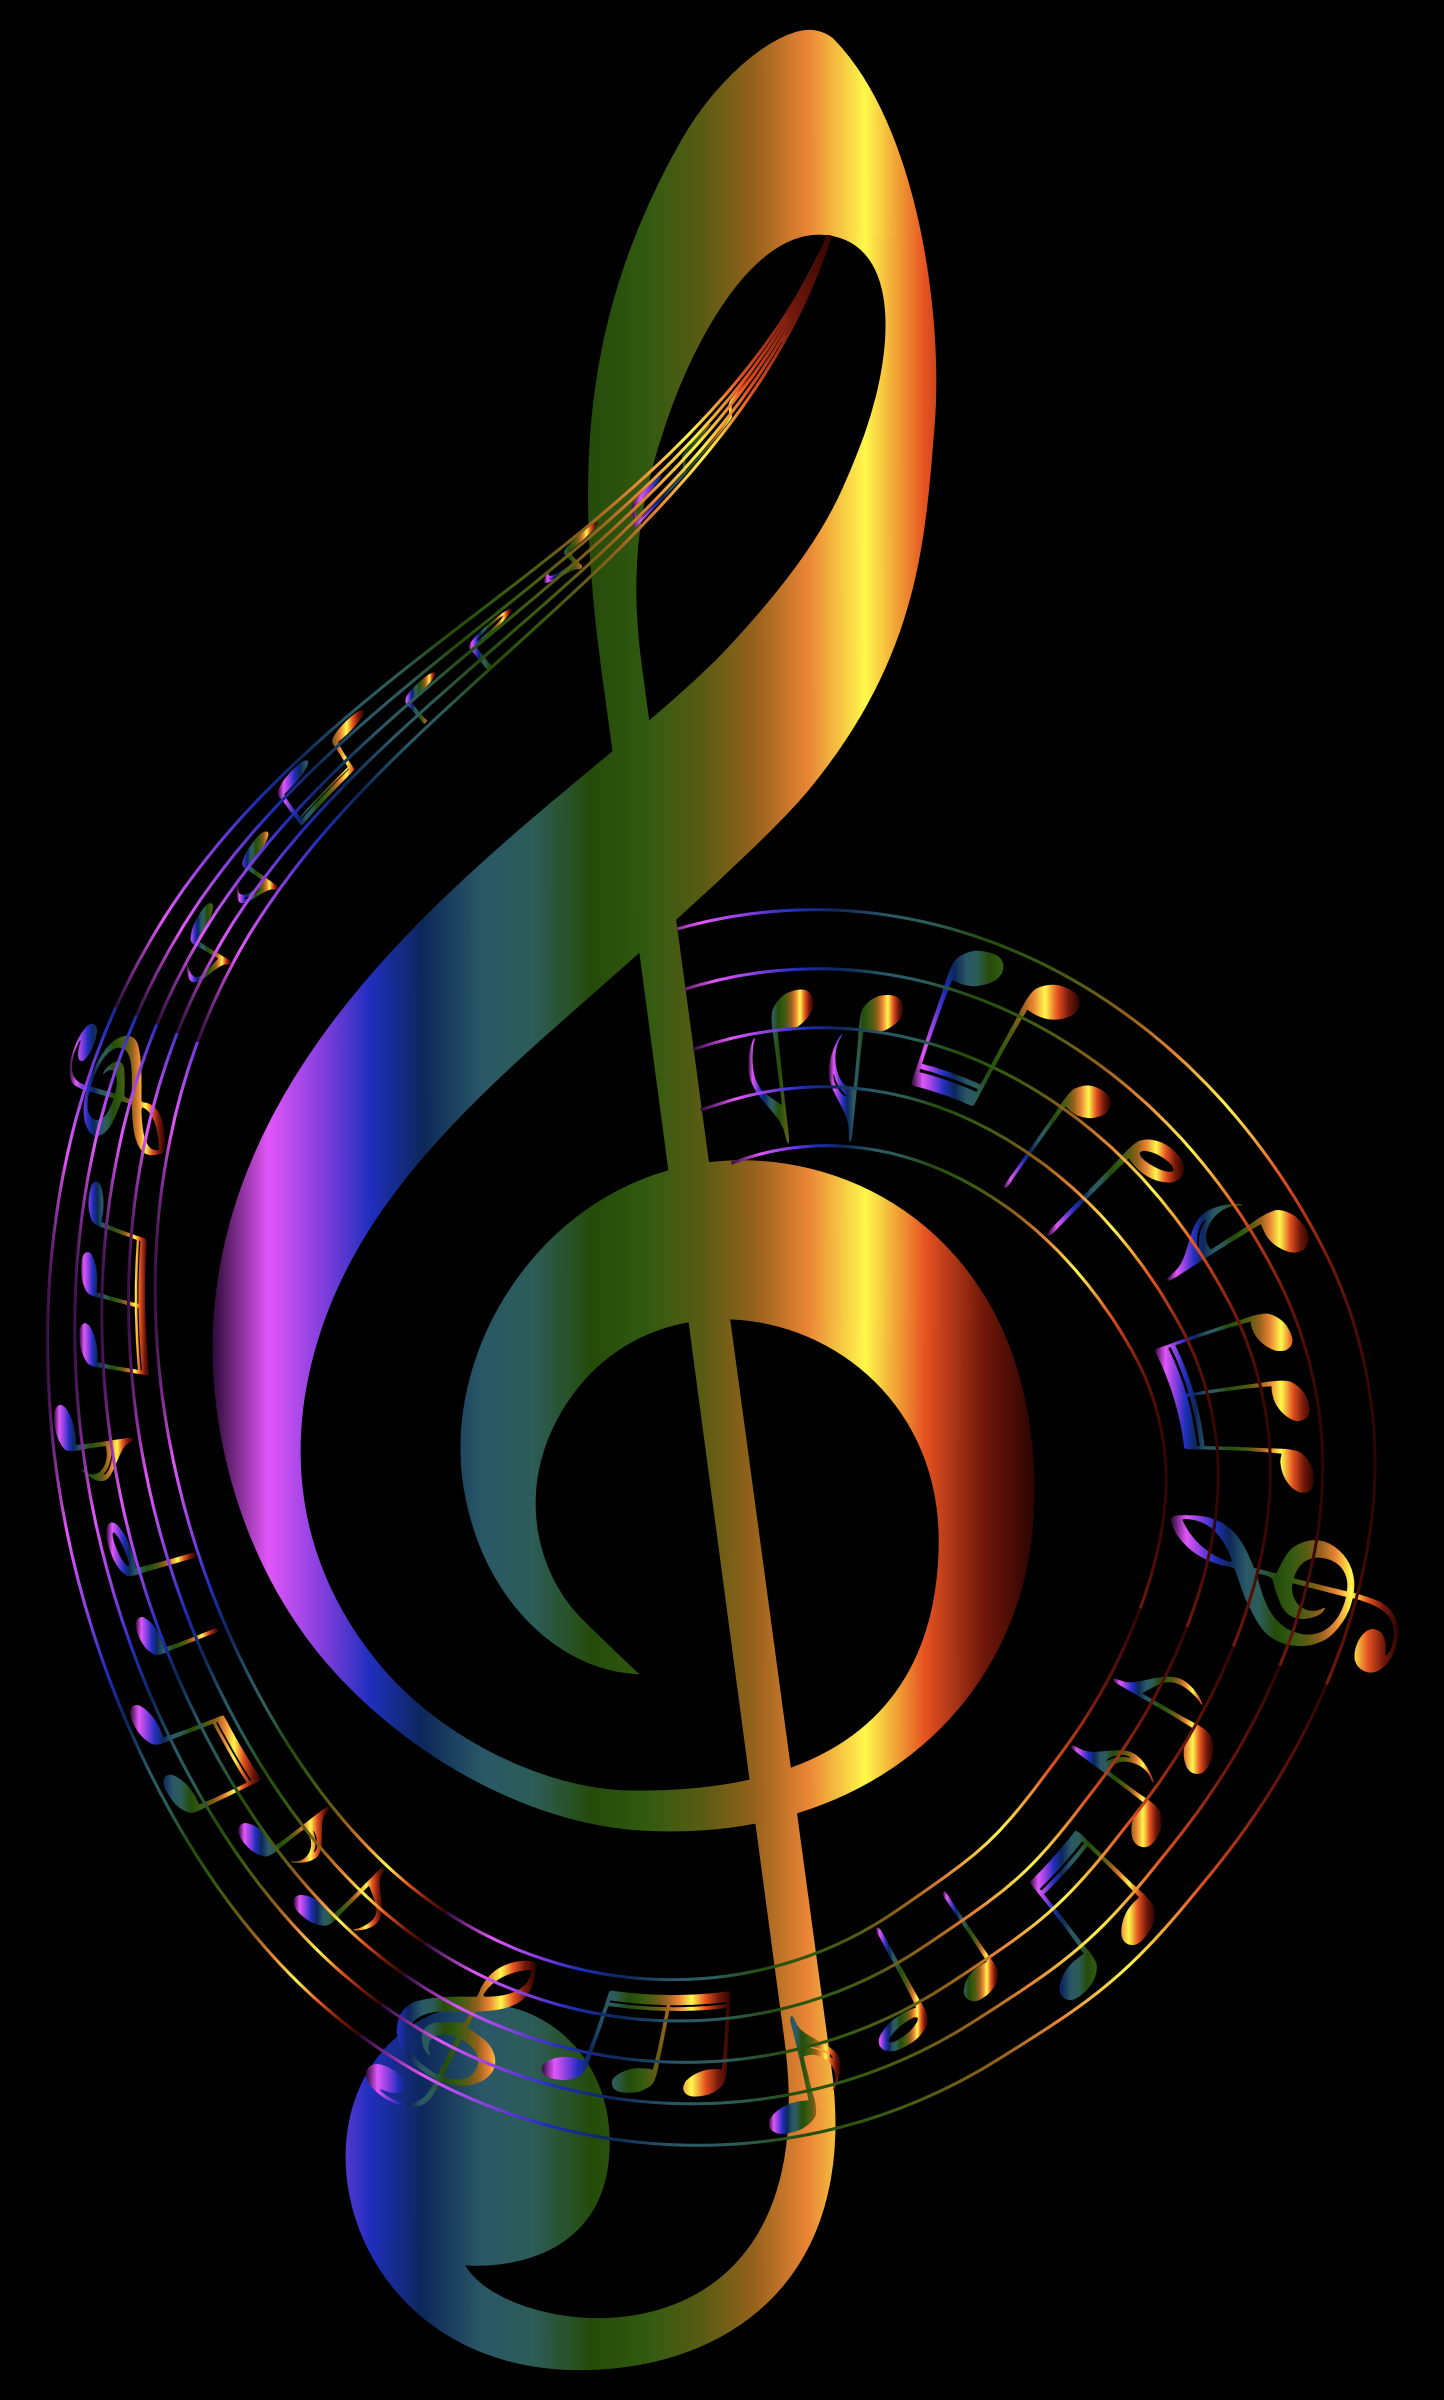 Chromatic Musical Notes Typography by GDJ